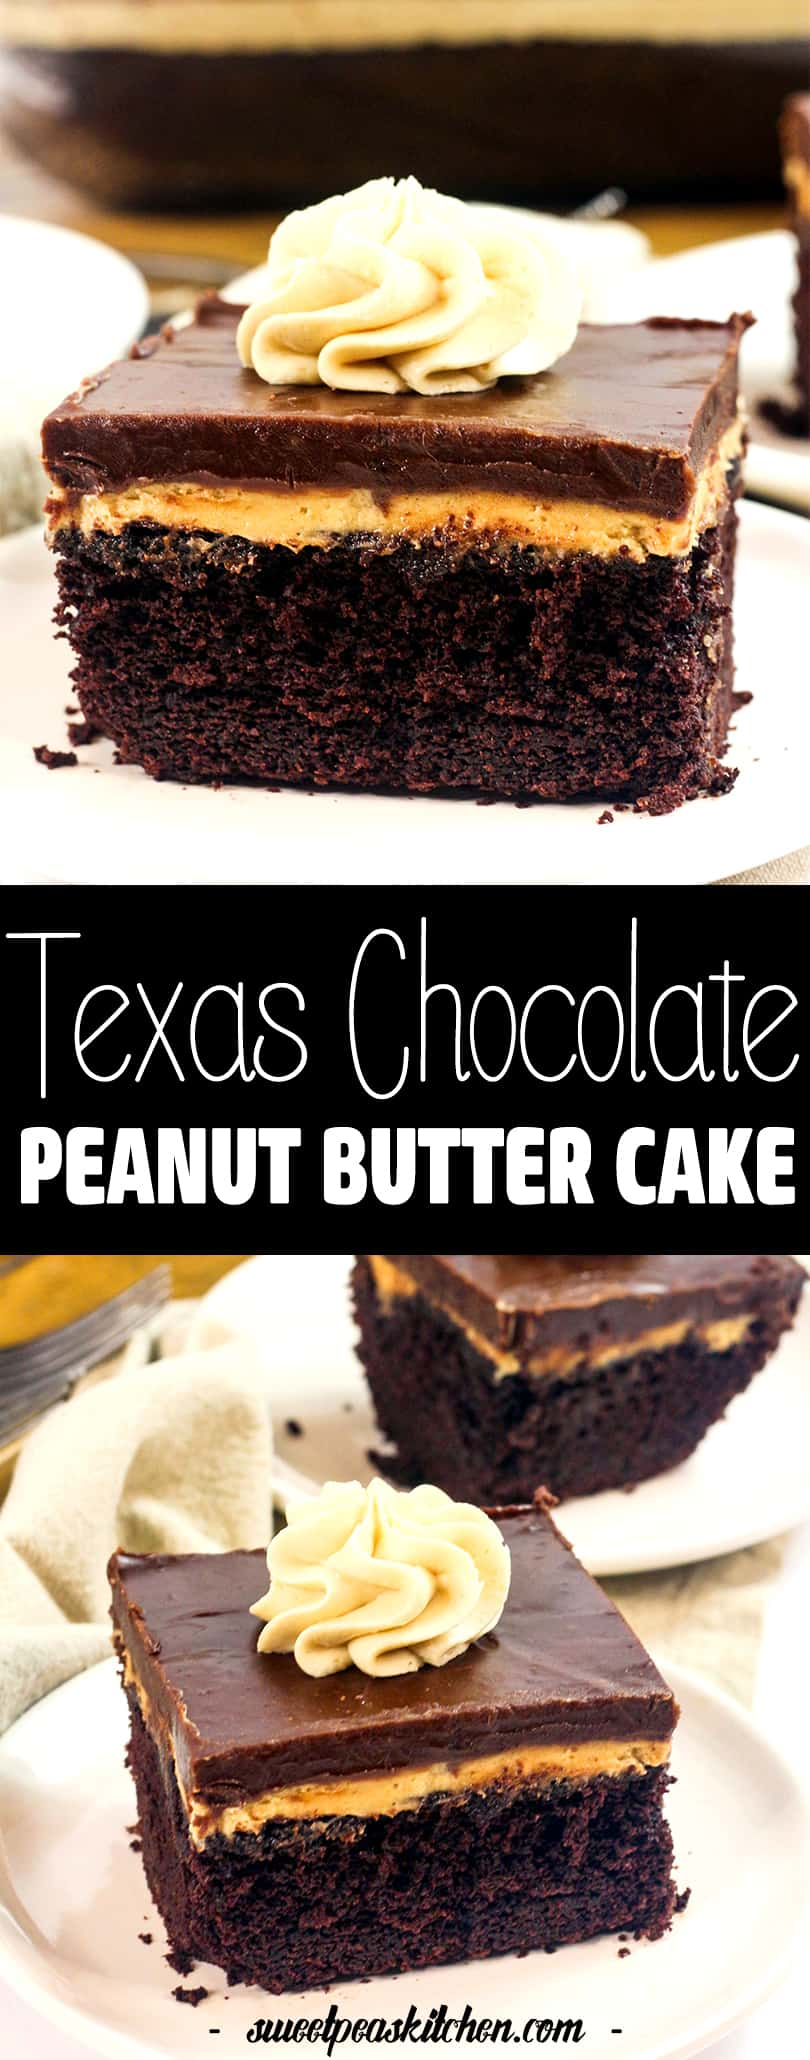 Texas Chocolate Peanut Butter Cake